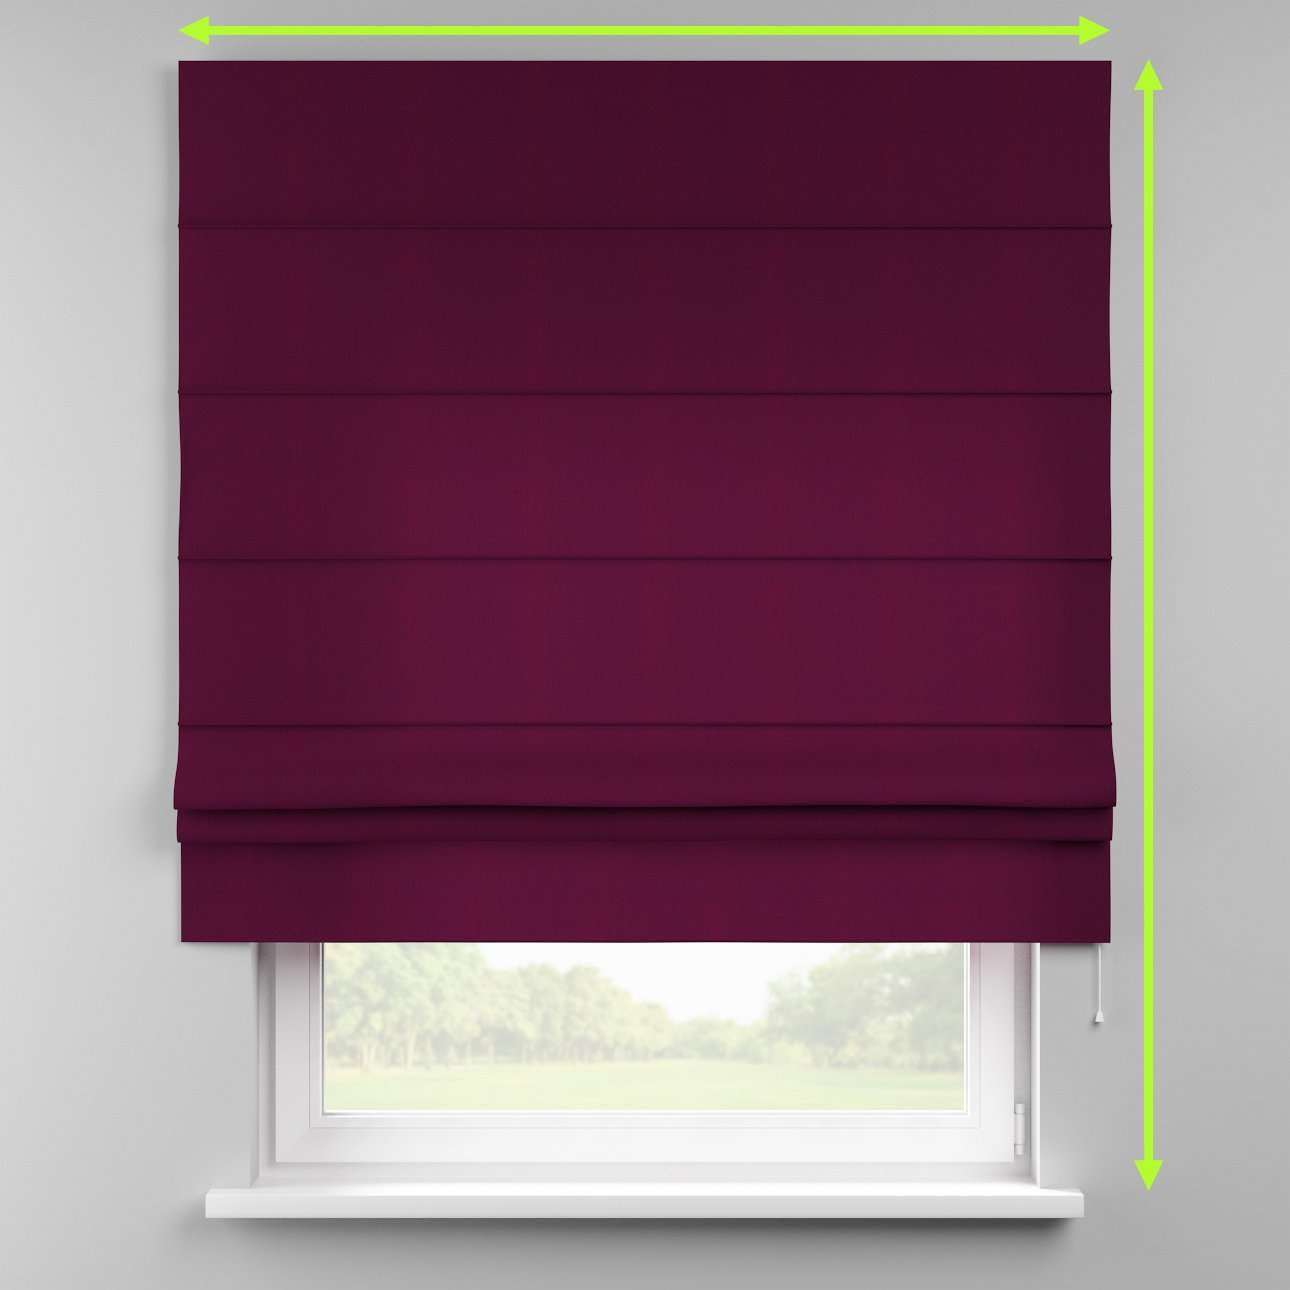 Padva roman blind  in collection Chenille, fabric: 702-12